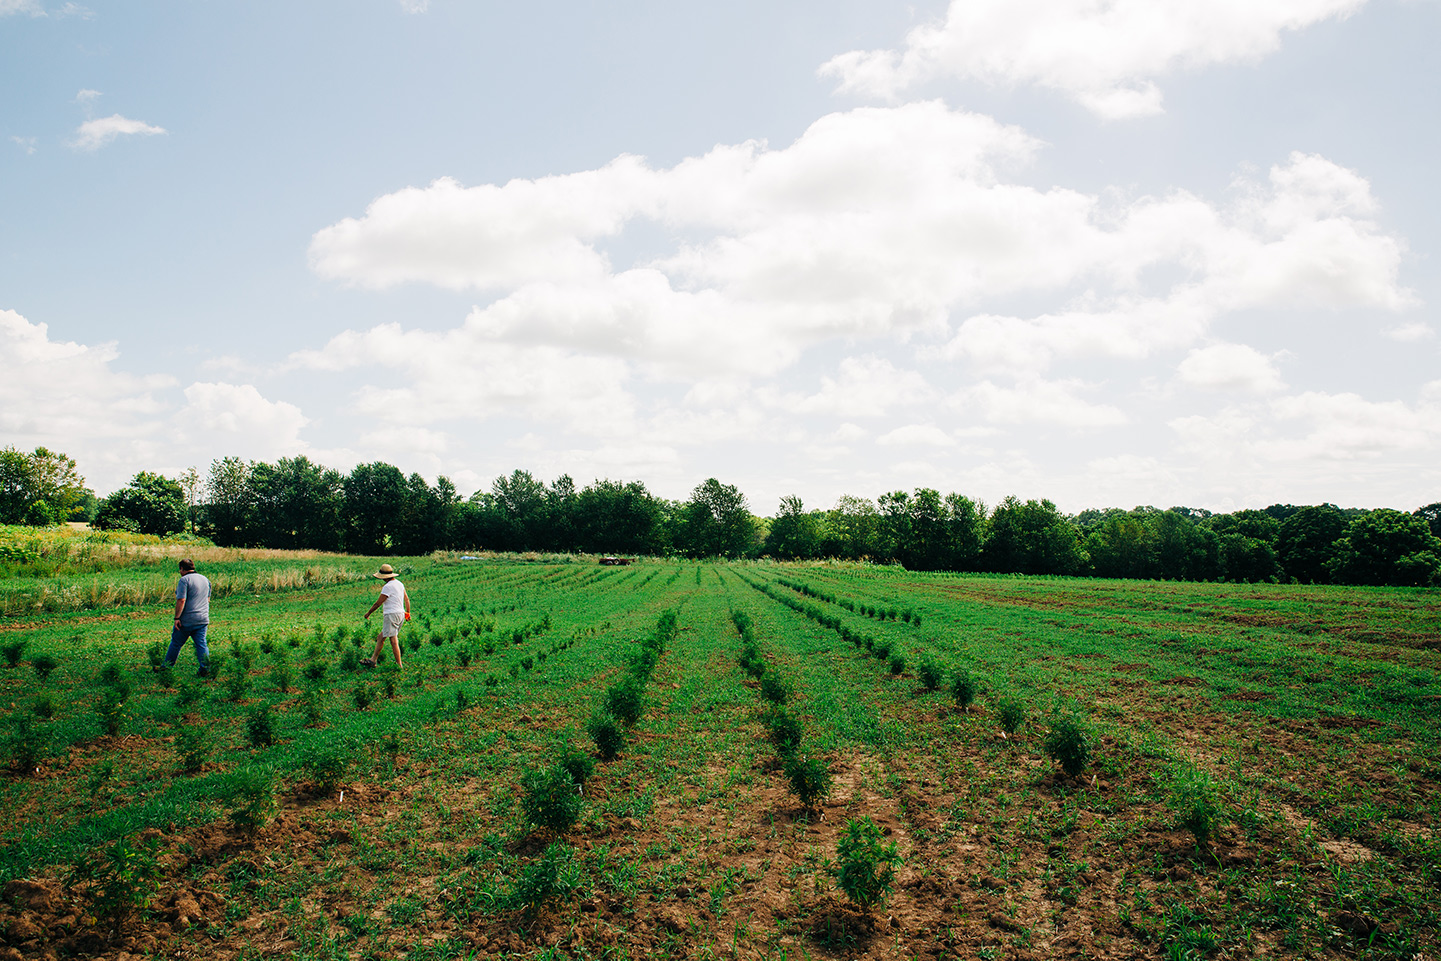 kentucky hemp field